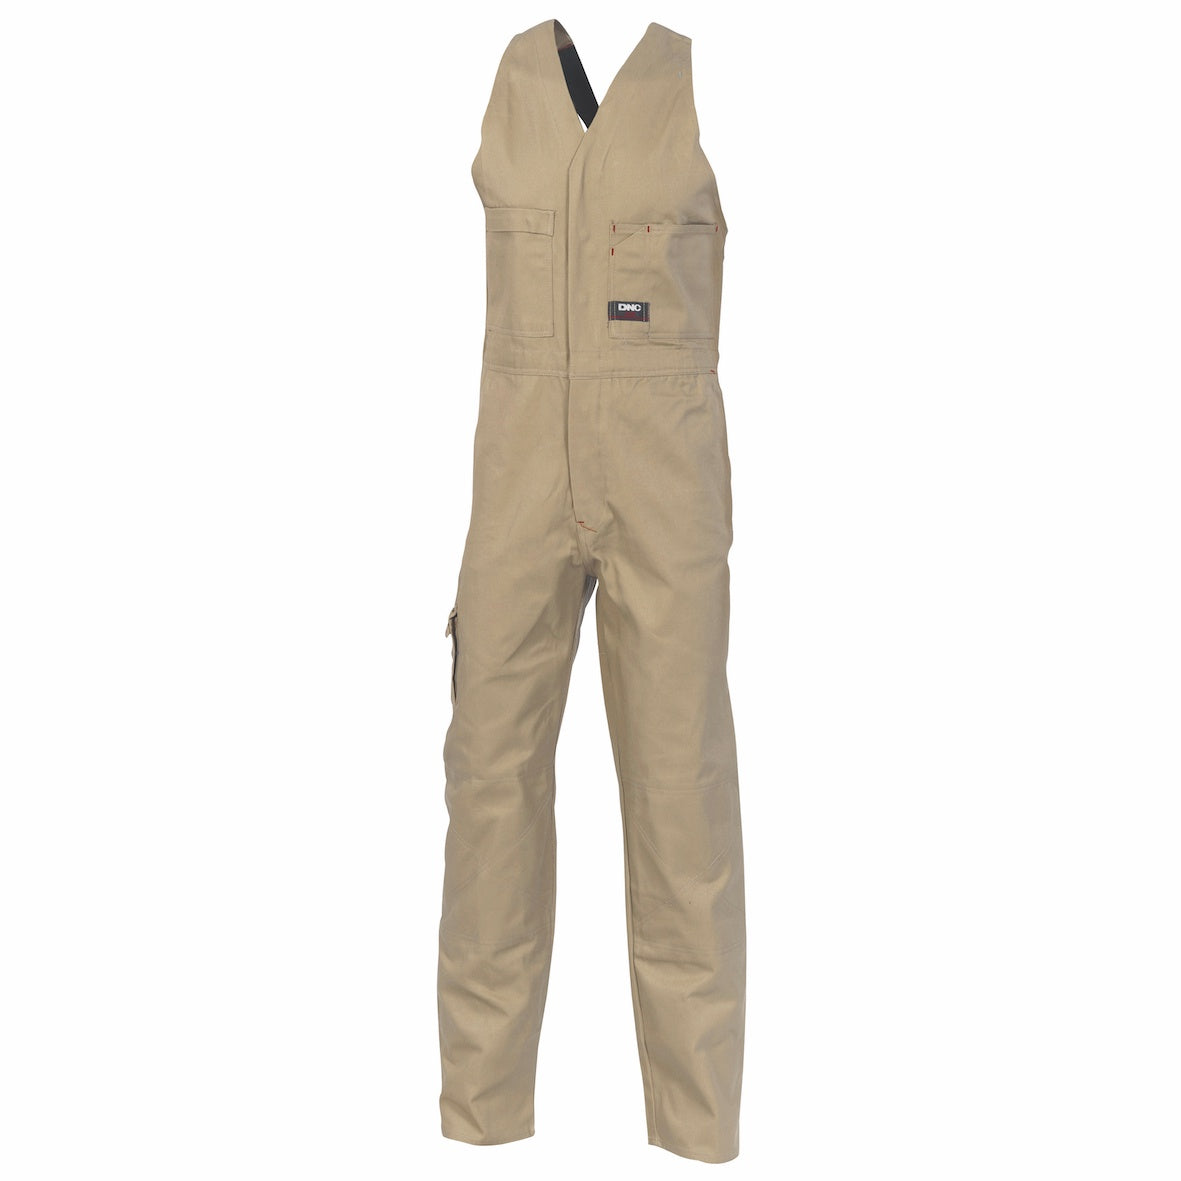 DNC - 3121 Action Back Cotton Drill Overall